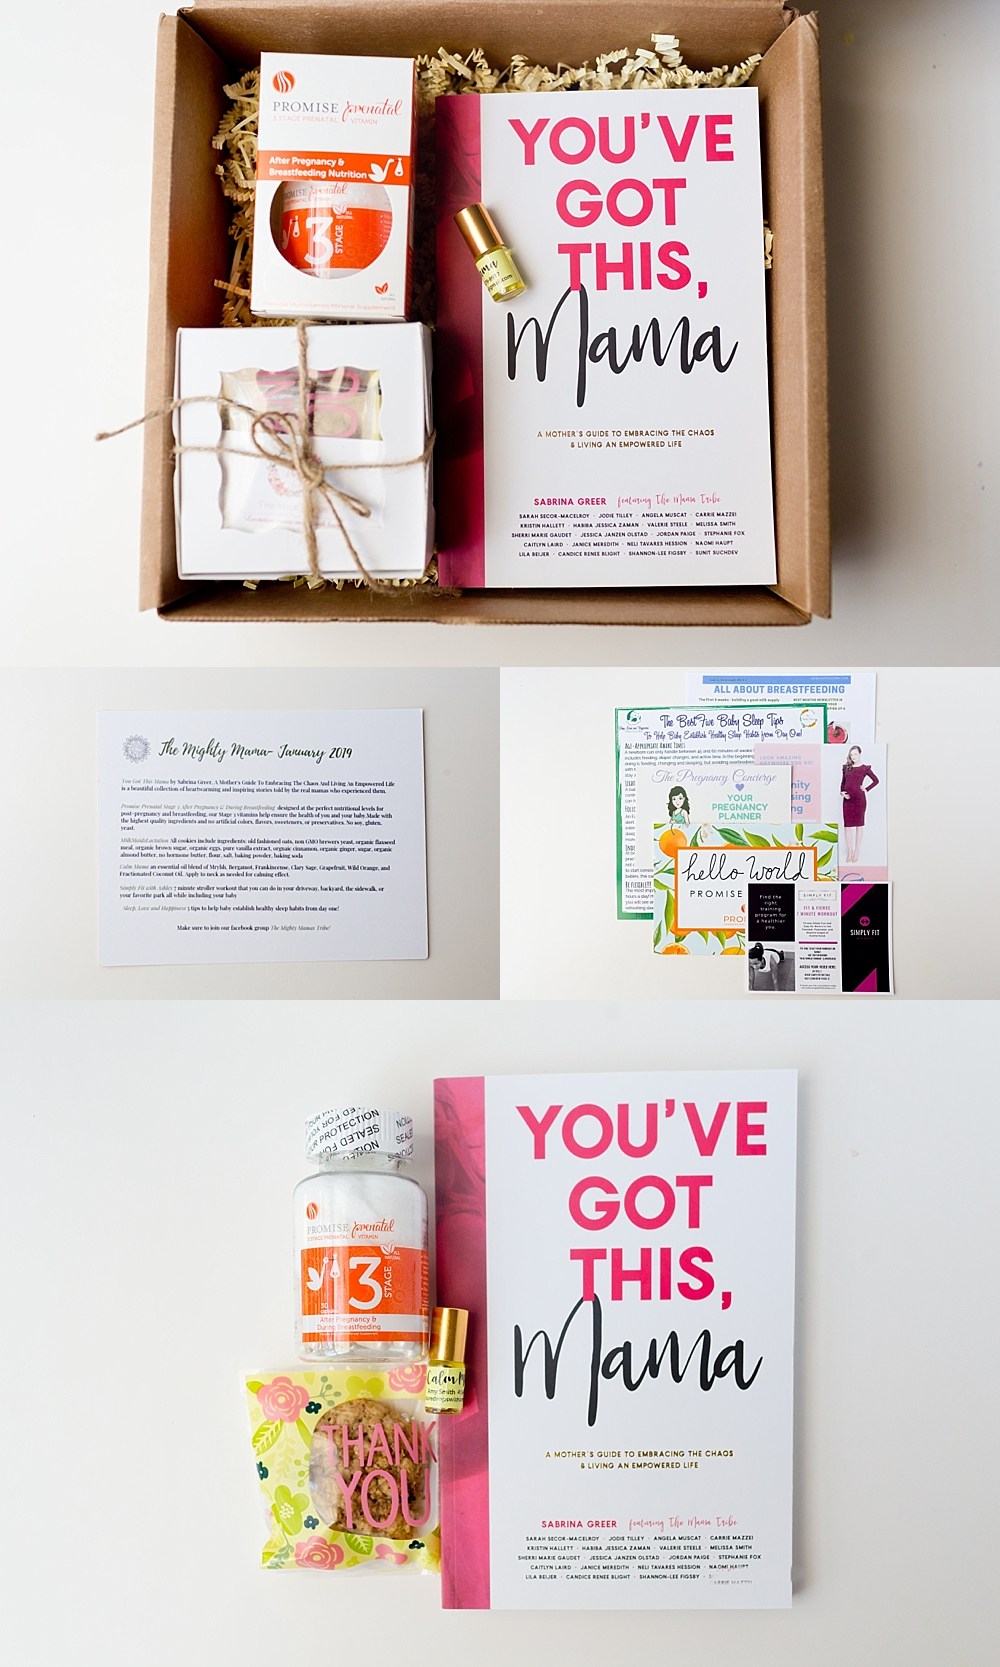 postpartum subscription box contents - gifts for new moms - The Mighty Mama Box